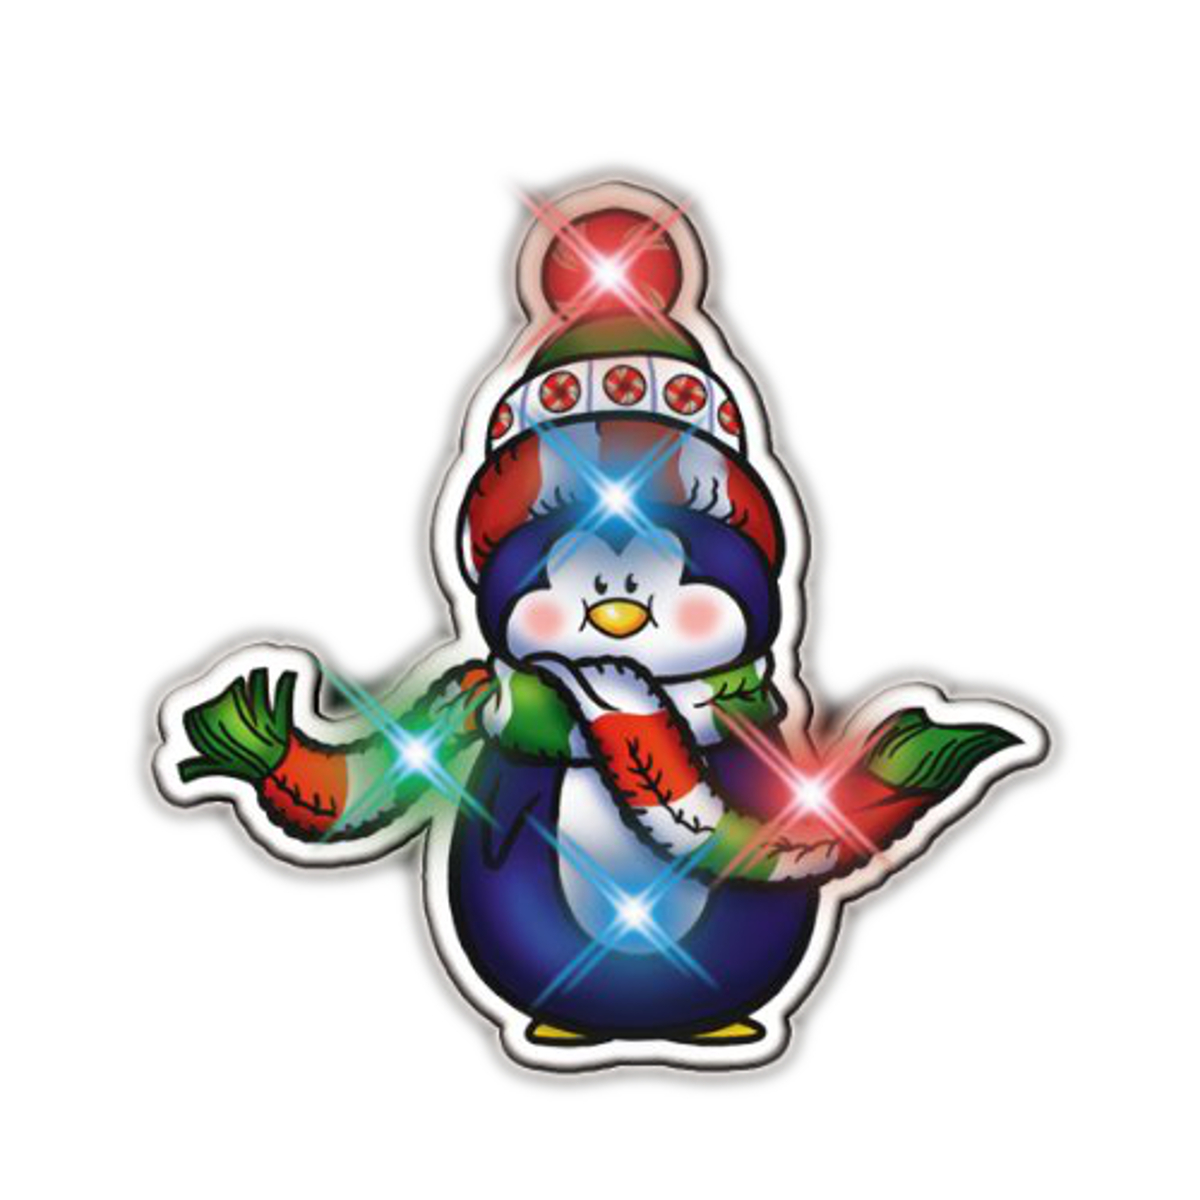 Penguin with Scarf Flashing Body Light Lapel Pins All Body Lights and Blinkees